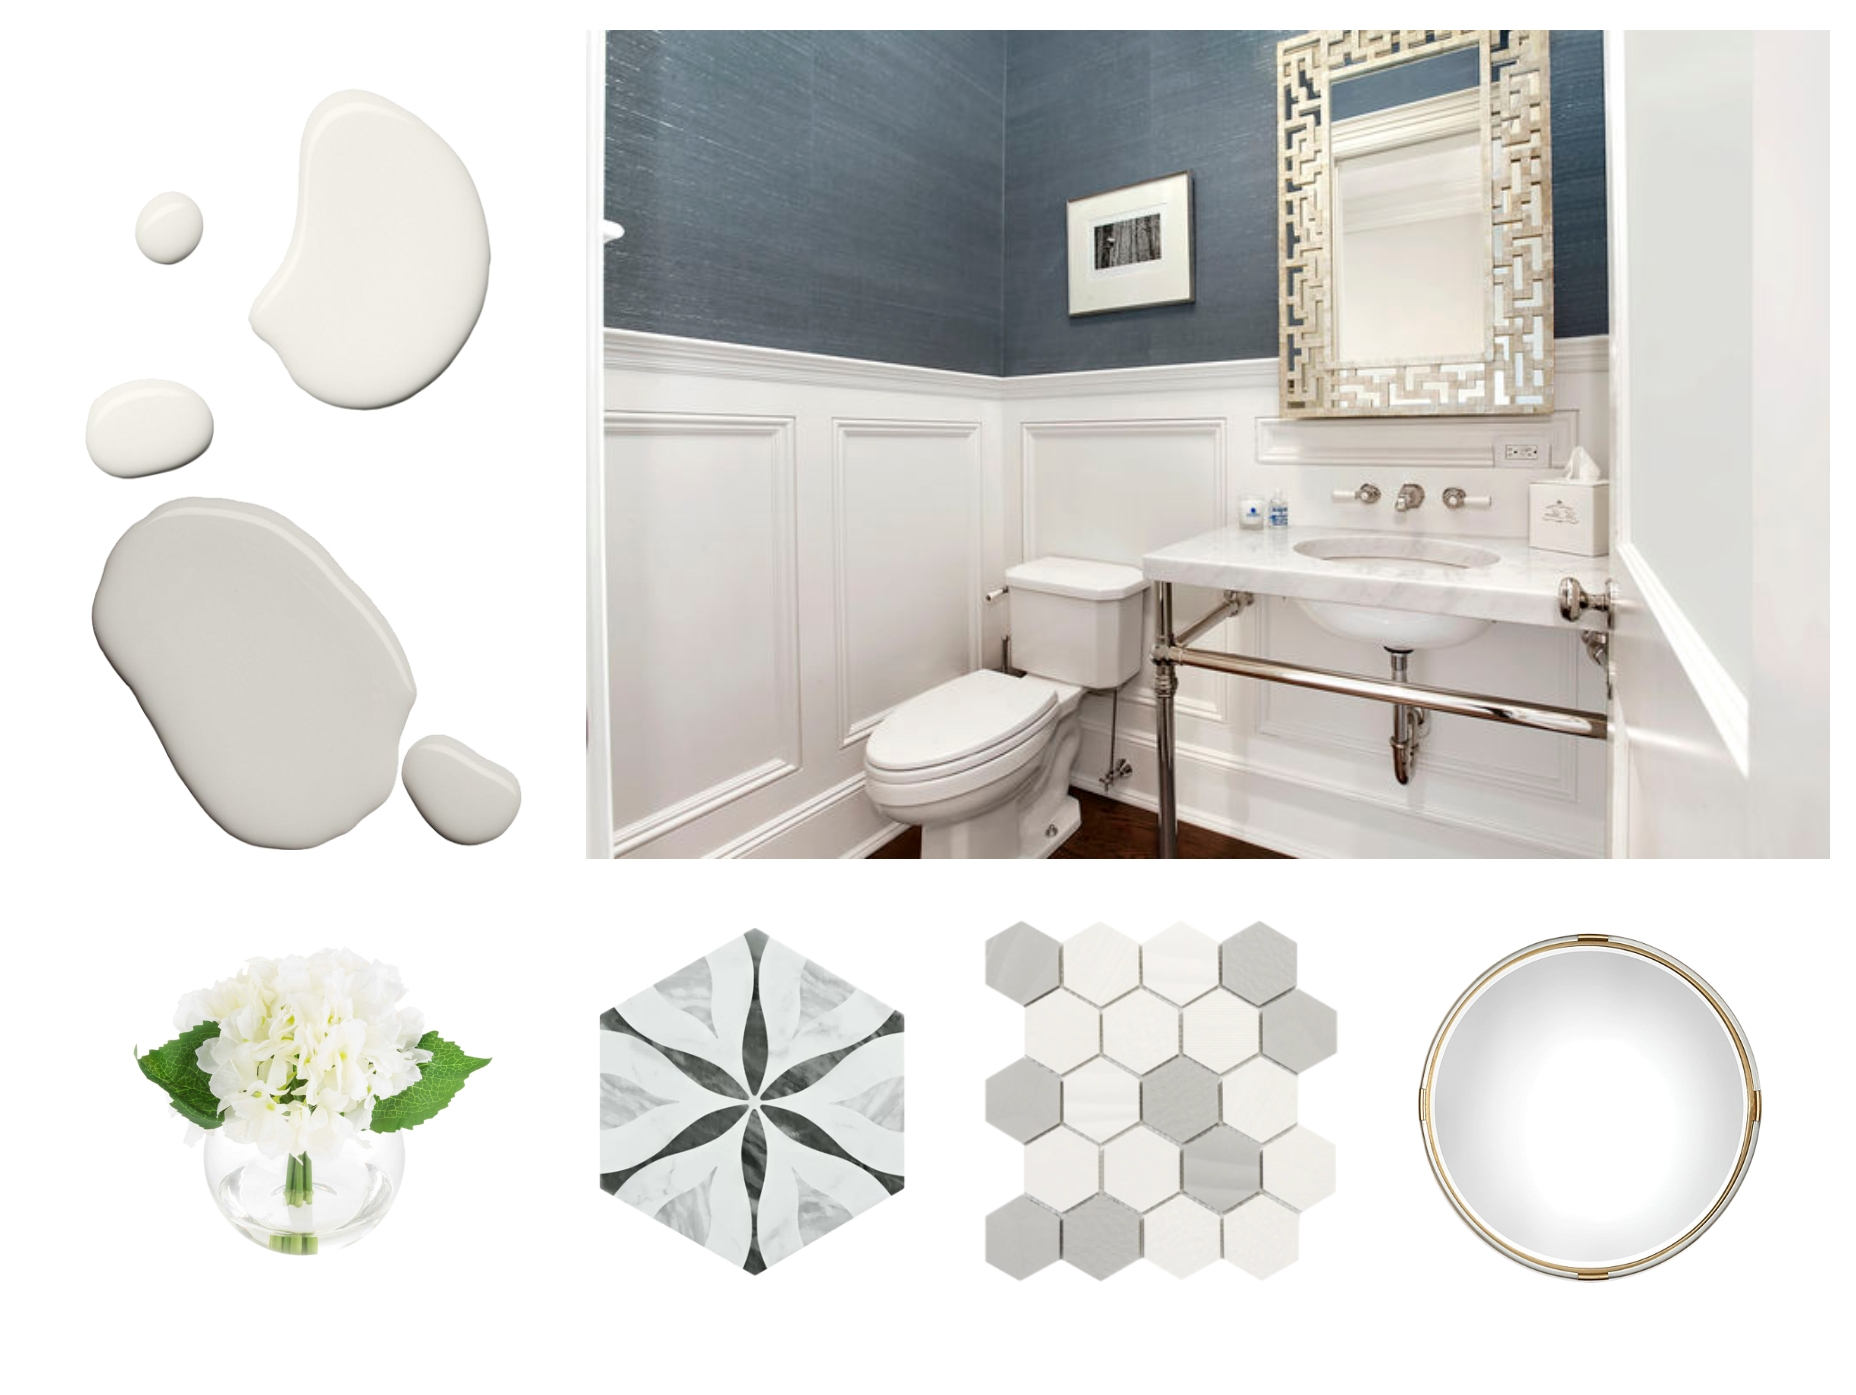 Bathroom Updates And Wainscoting Heights ? | Decorist 20+ Wainscoting Bathroom Pictures Inspirations